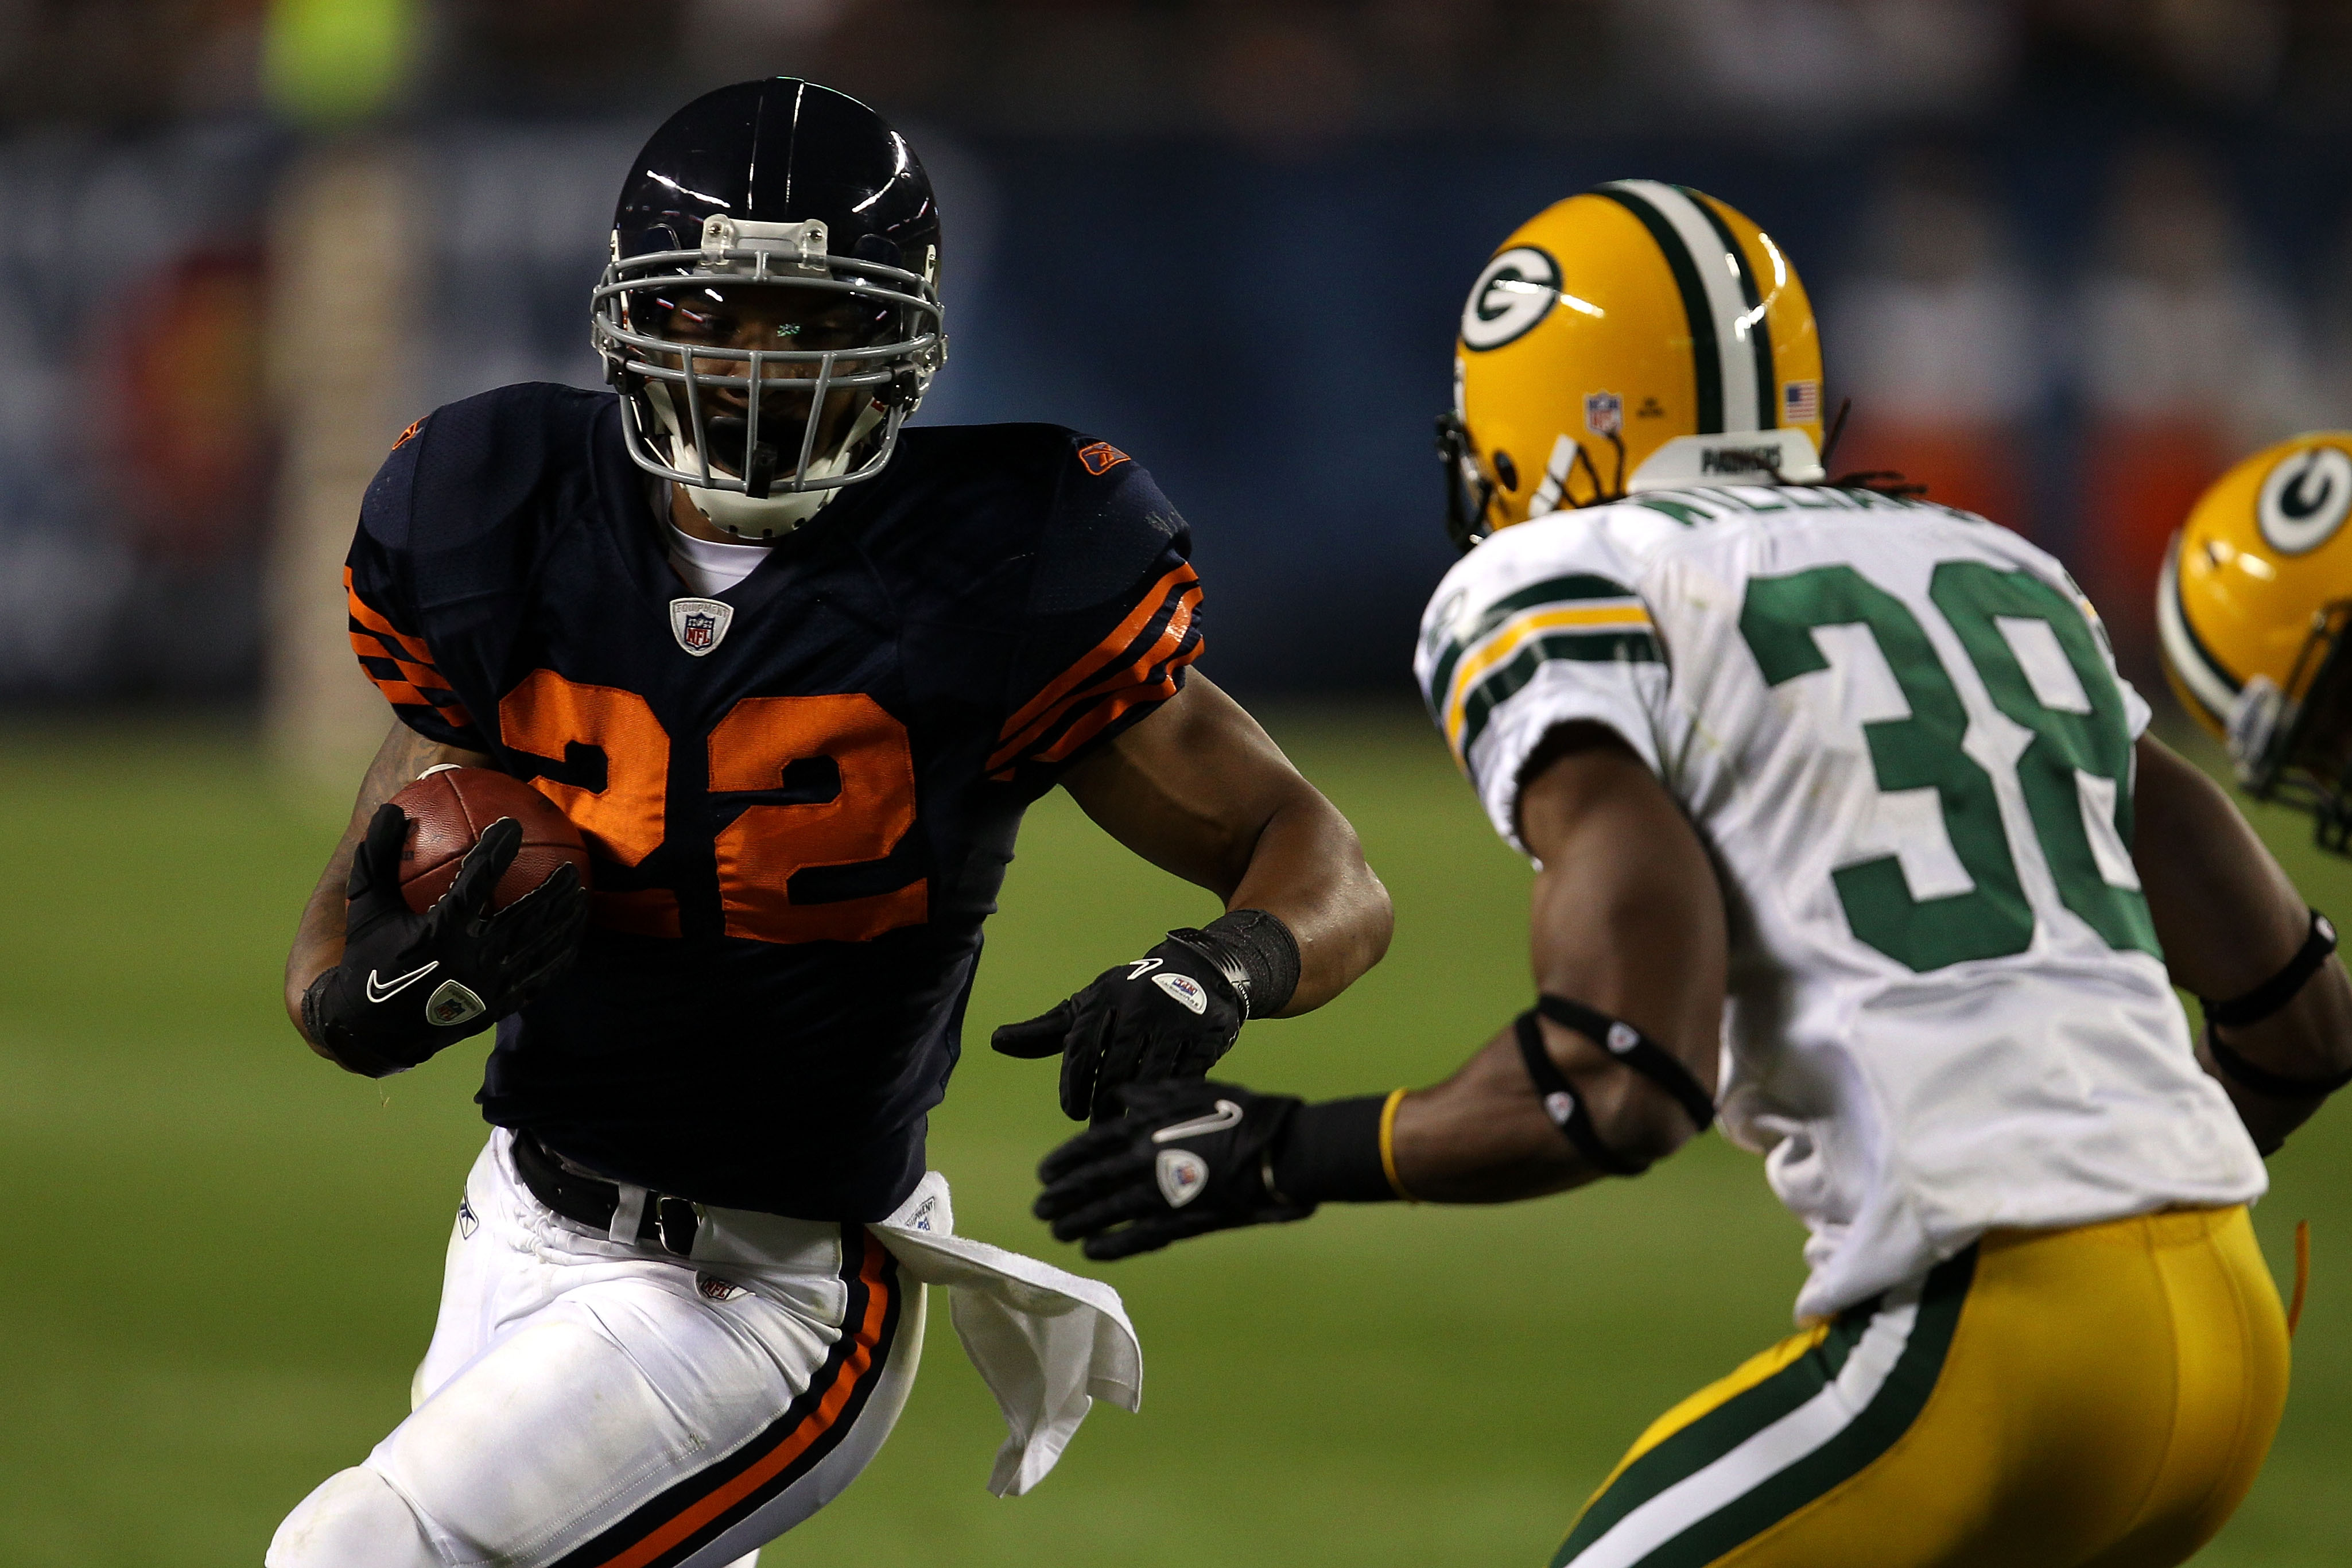 CHICAGO - SEPTEMBER 27:  Matt Forte #22 of the Chicago Bears runs the ball against Tramon Williams #38 of the Green Bay Packers at Soldier Field on September 27, 2010 in Chicago, Illinois.  (Photo by Jonathan Daniel/Getty Images)